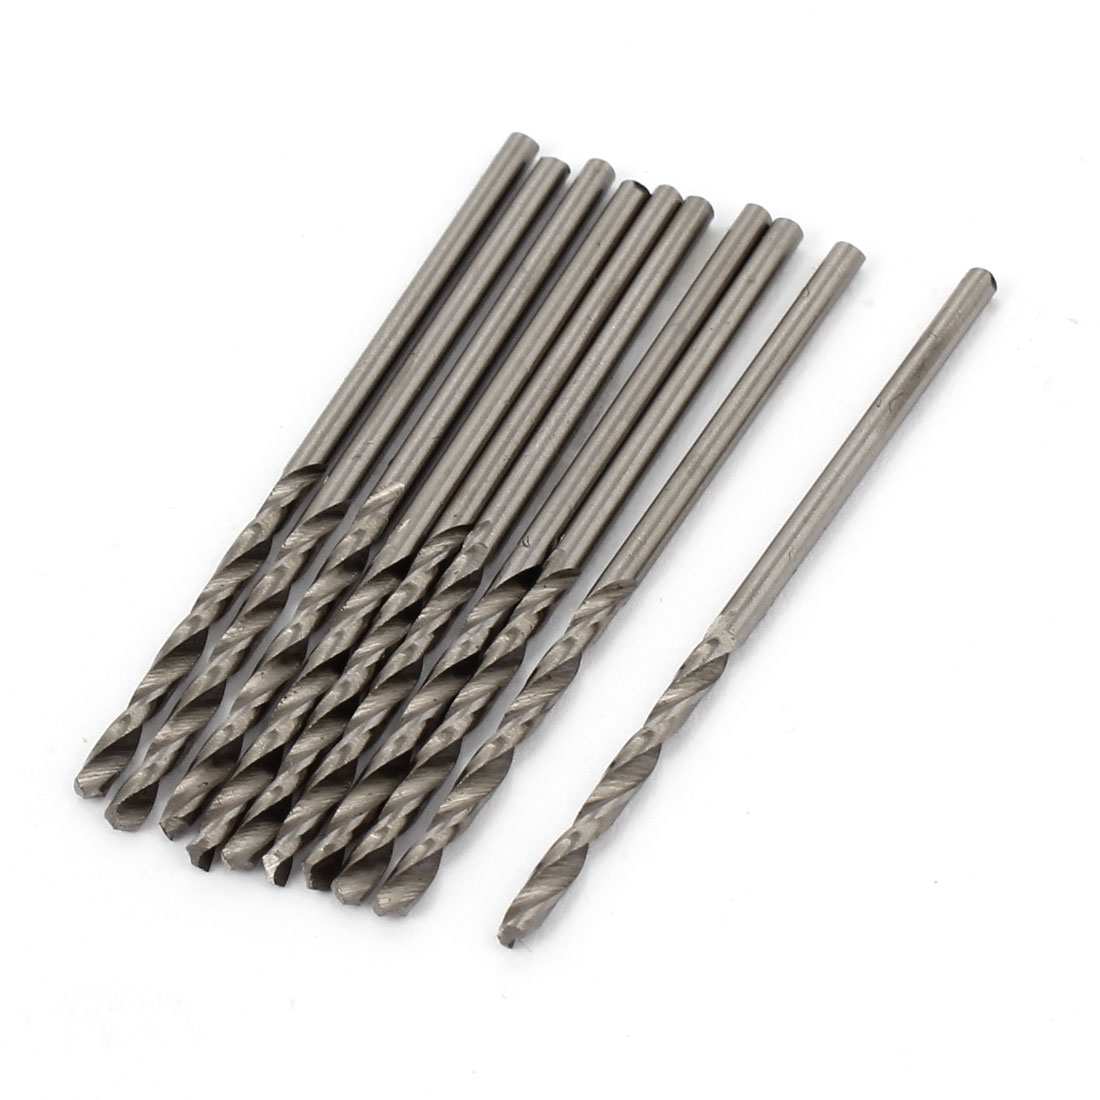 10 Pcs Straight Shank 25mm Flute Long 1.9mm Dia Electric Drill Twist Bit